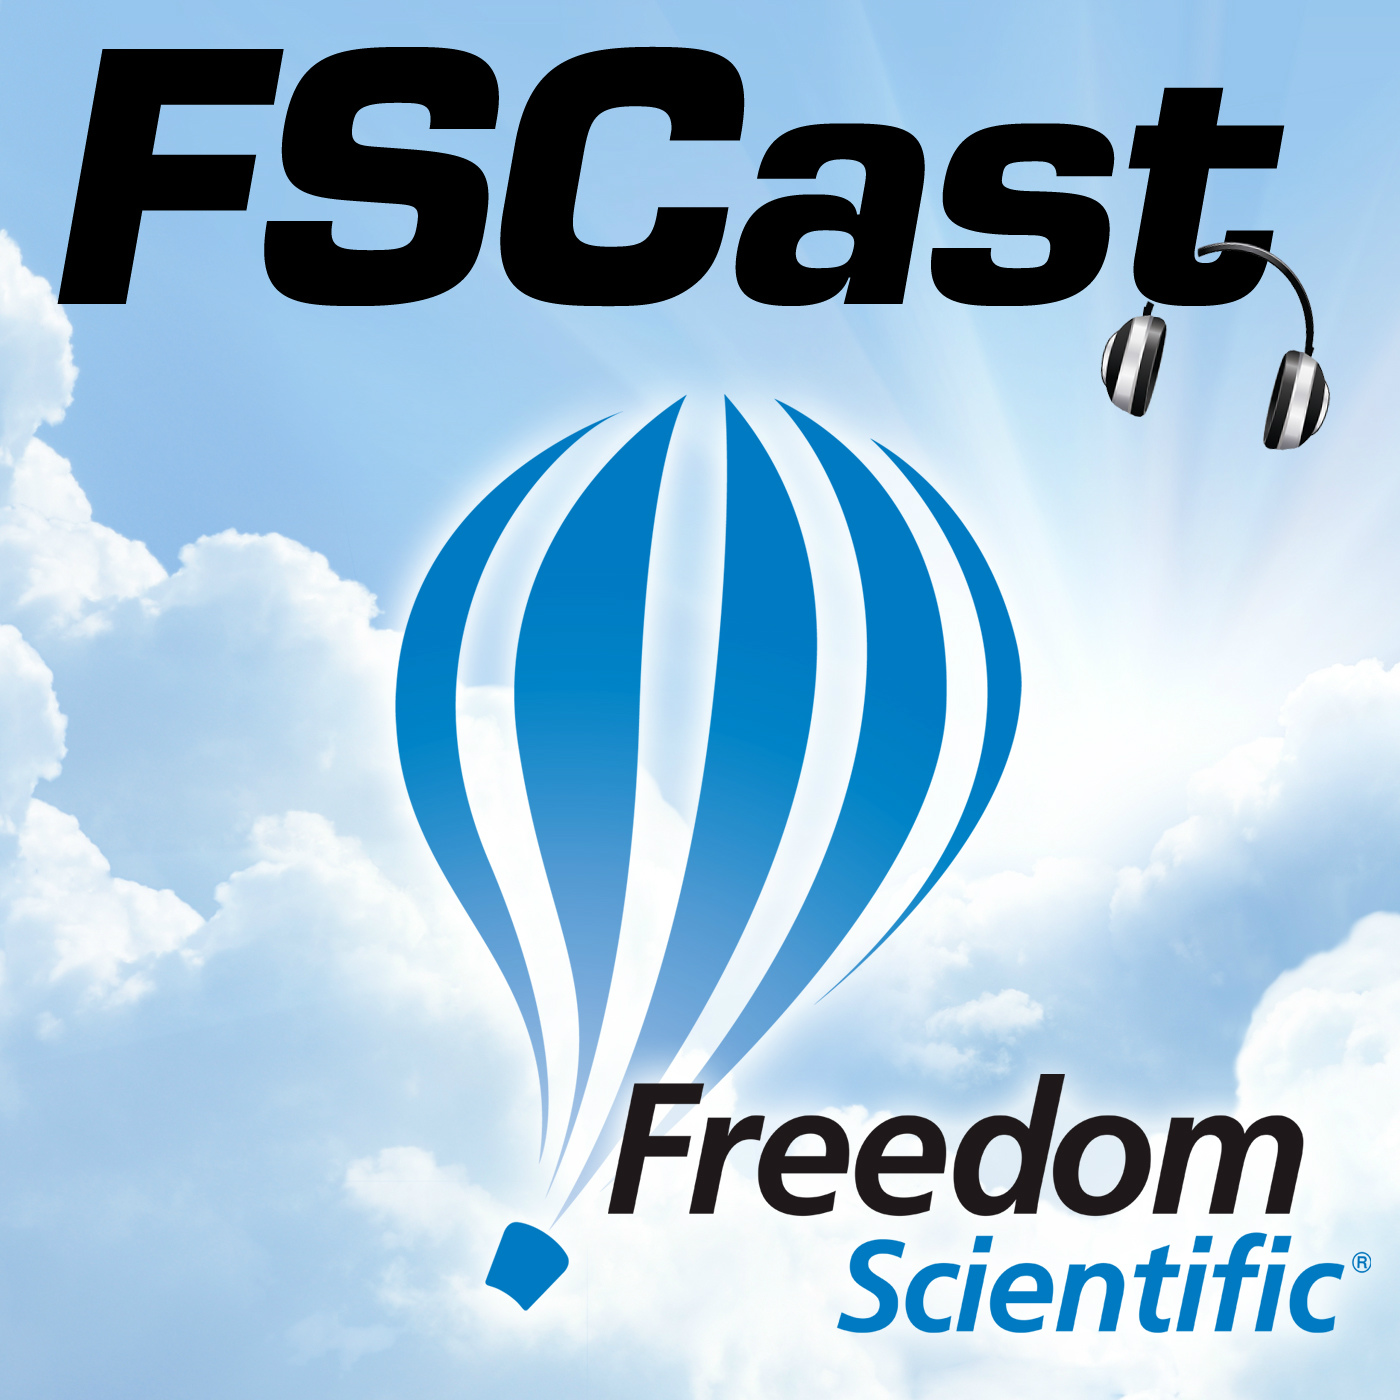 Freedom Scientific FSCast